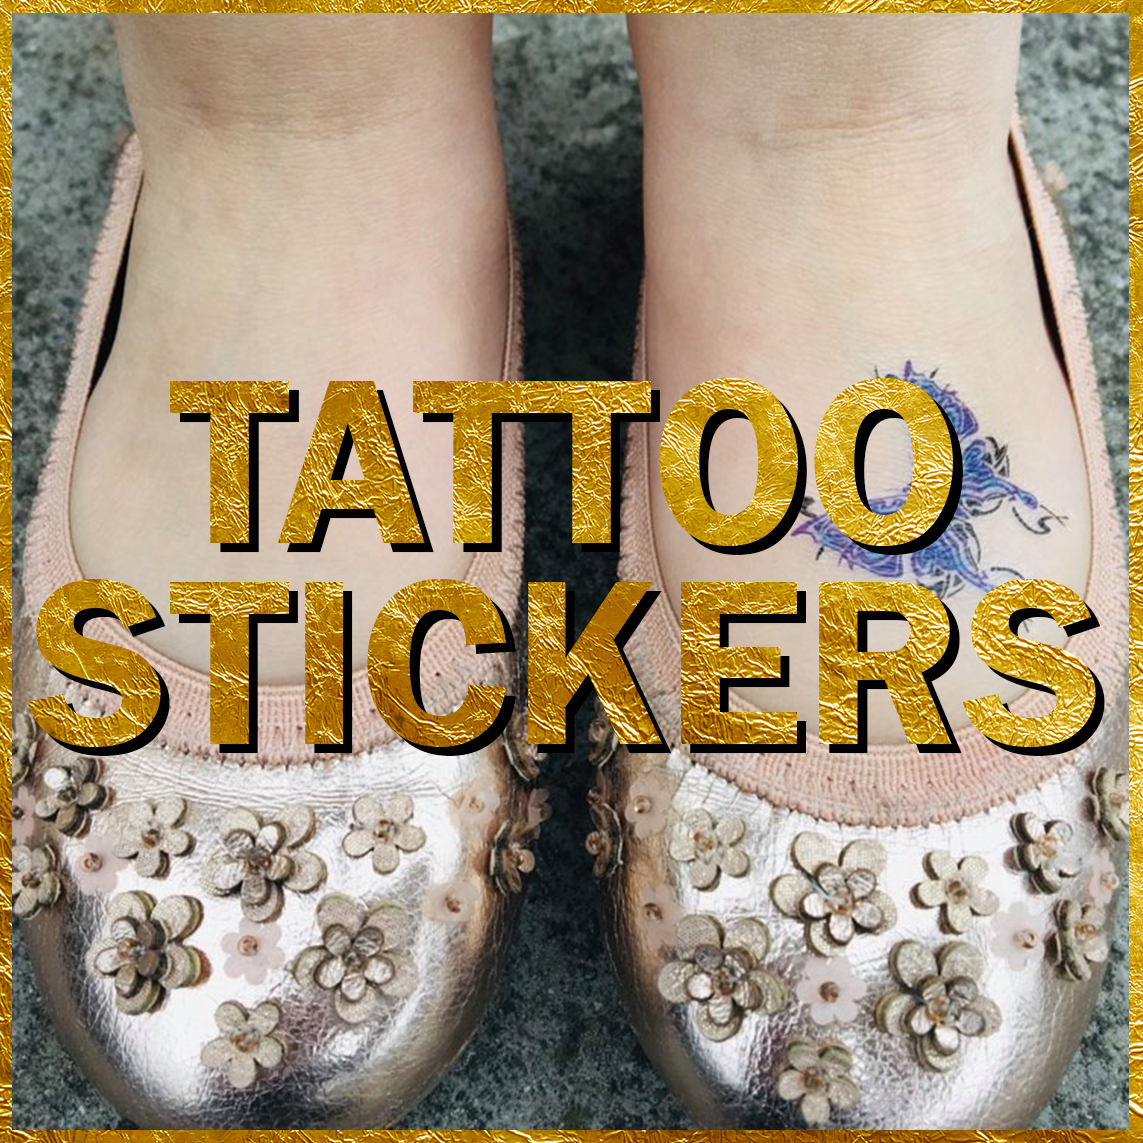 temporary tattoo stickers for childrens party bag fillers